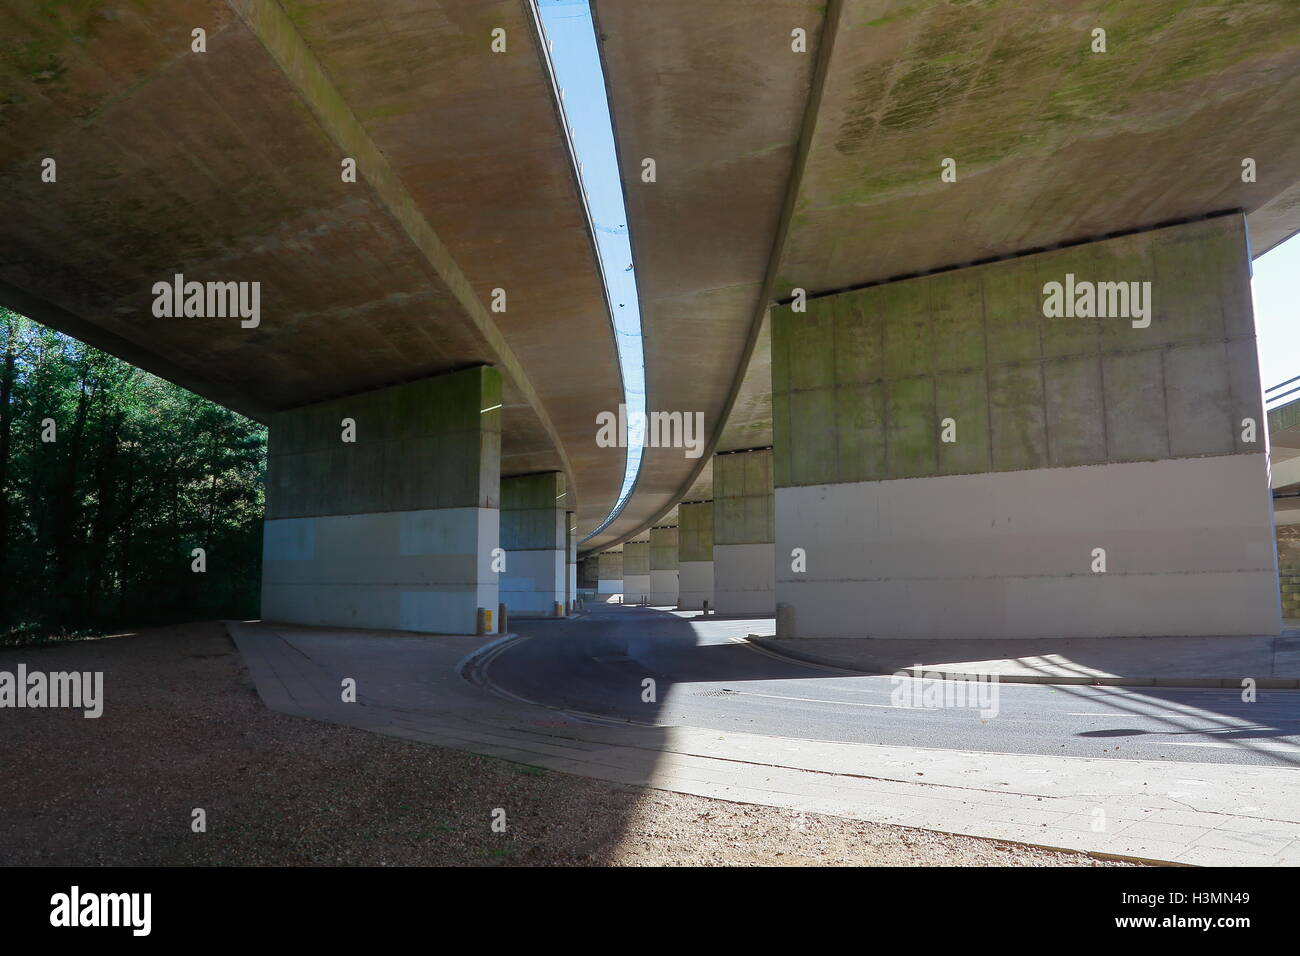 Looking up under the arches of a huge curved concrete flyover with a space between dual carriageways. - Stock Image